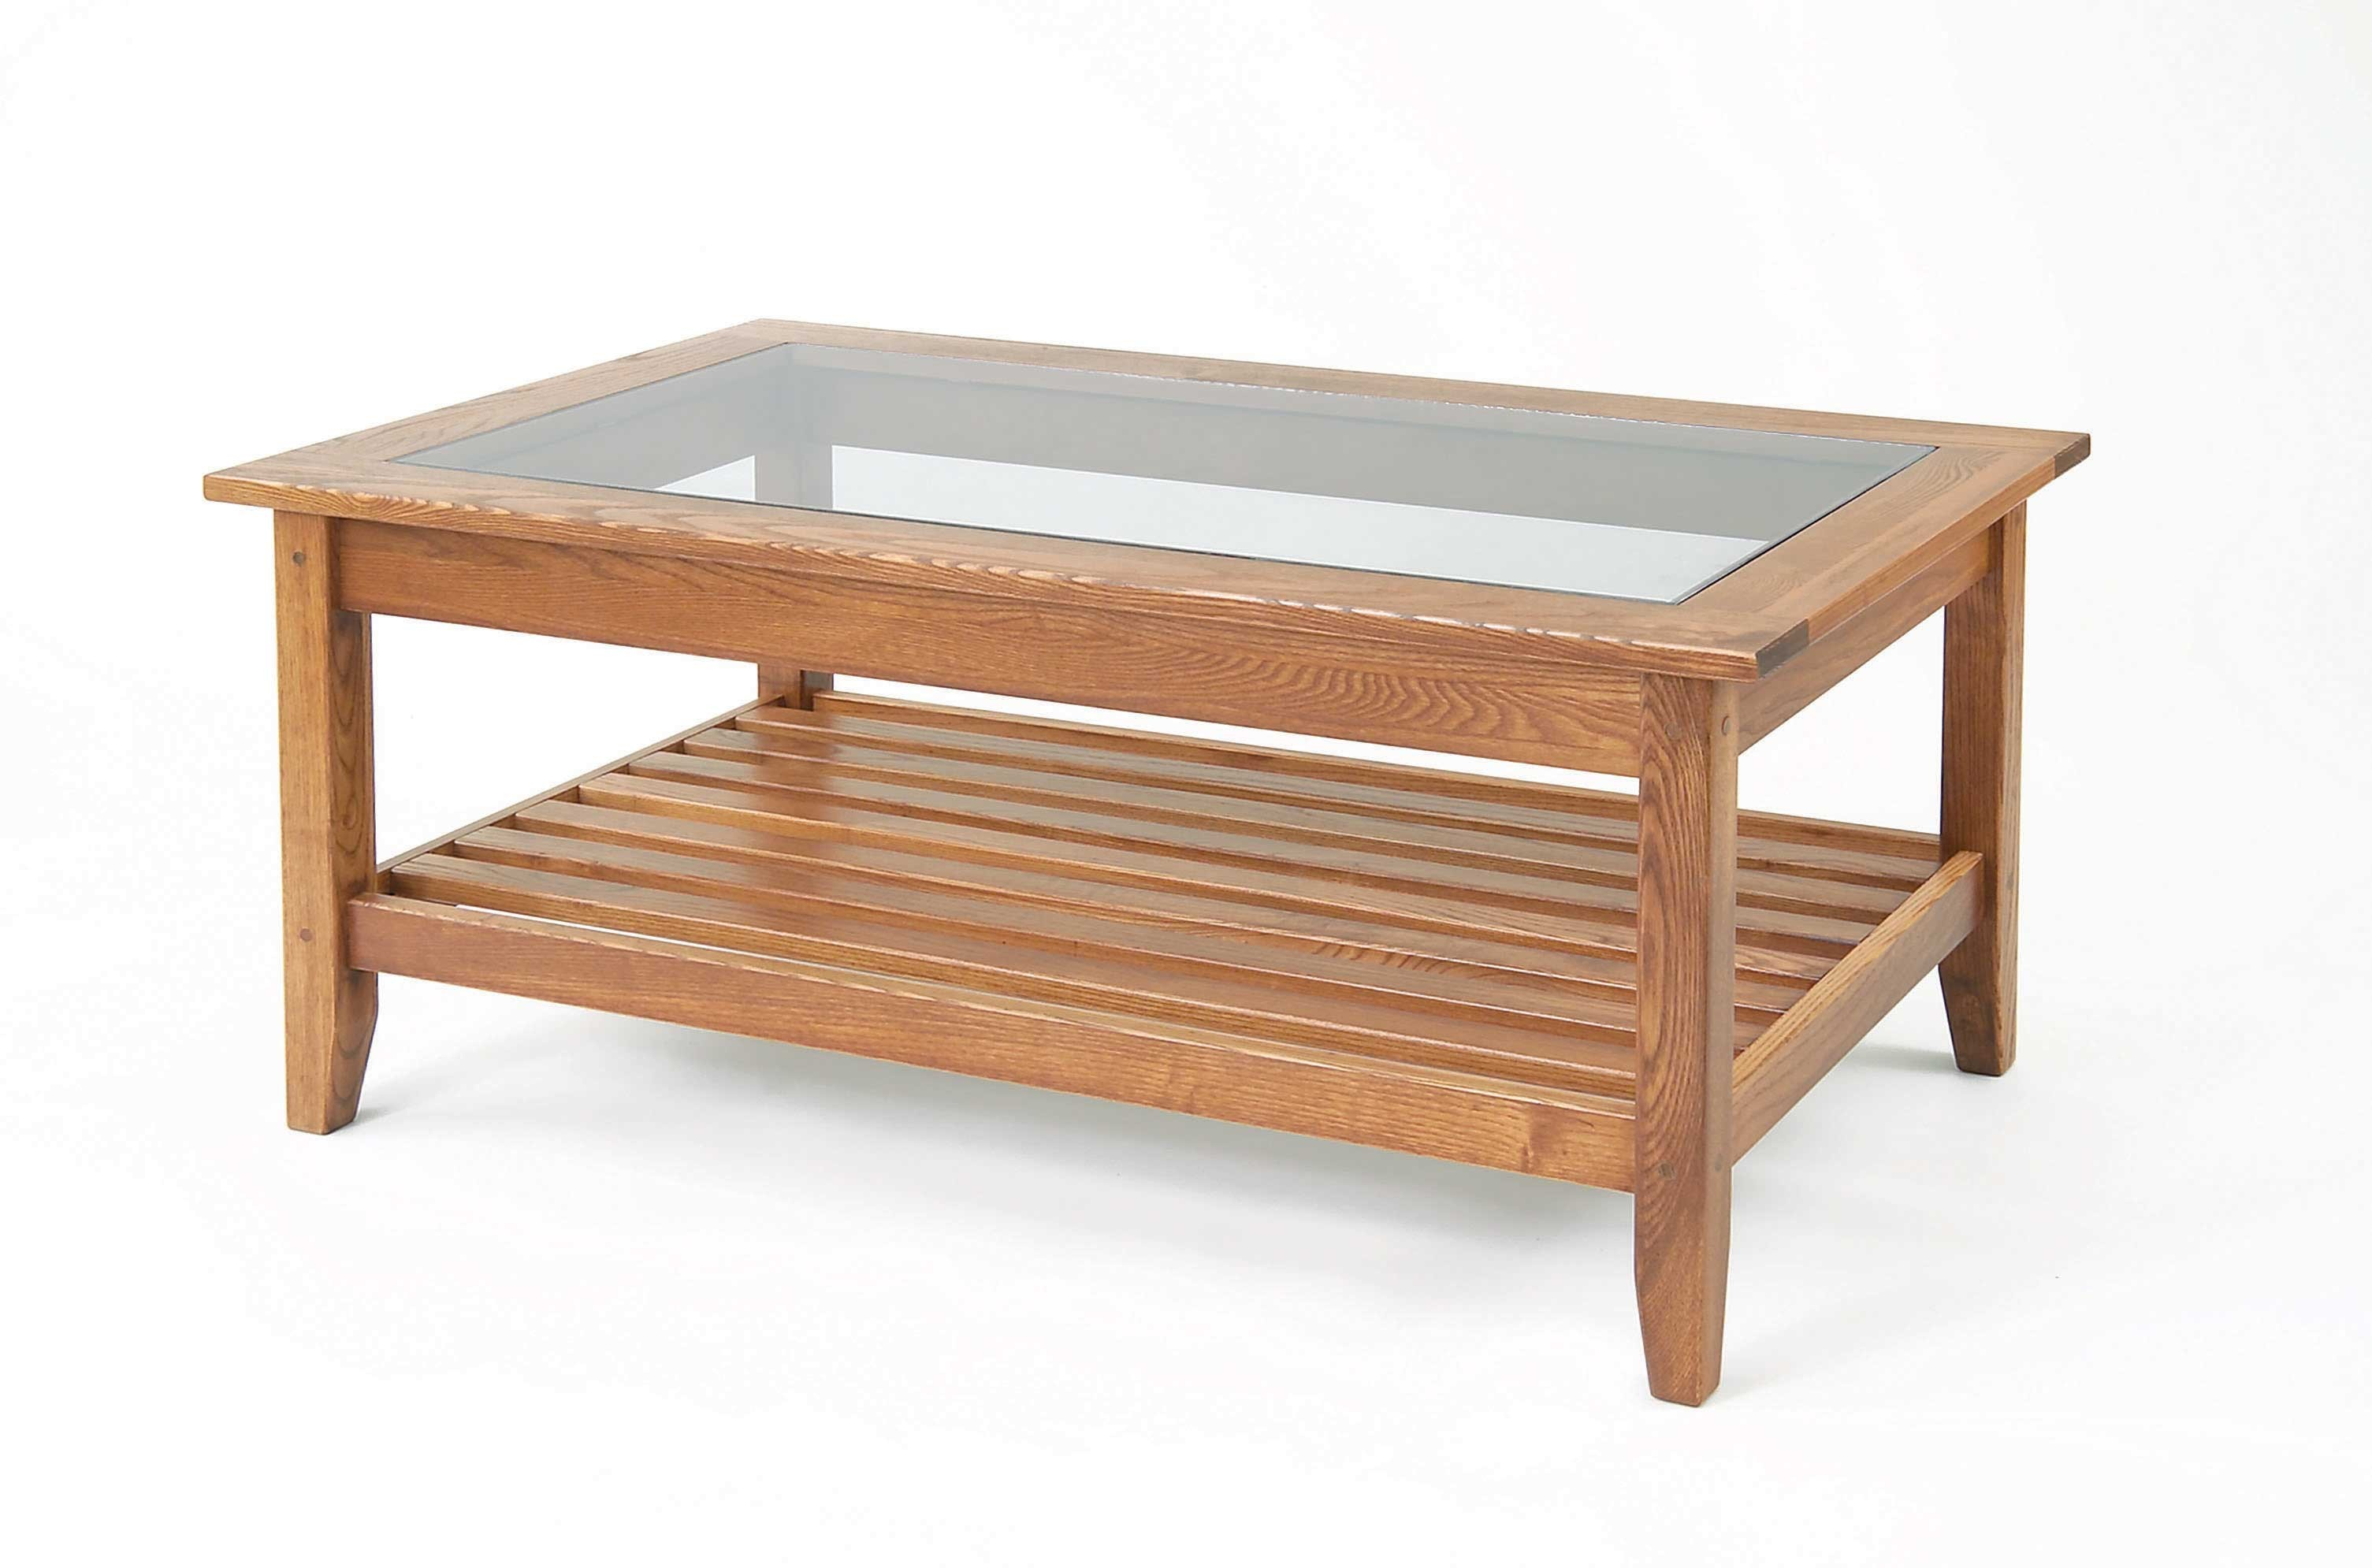 Wooden Coffee Table With Glass Top And Would Work Well In A Reception Foyer Club Or Bar As Well As The Home (View 4 of 11)